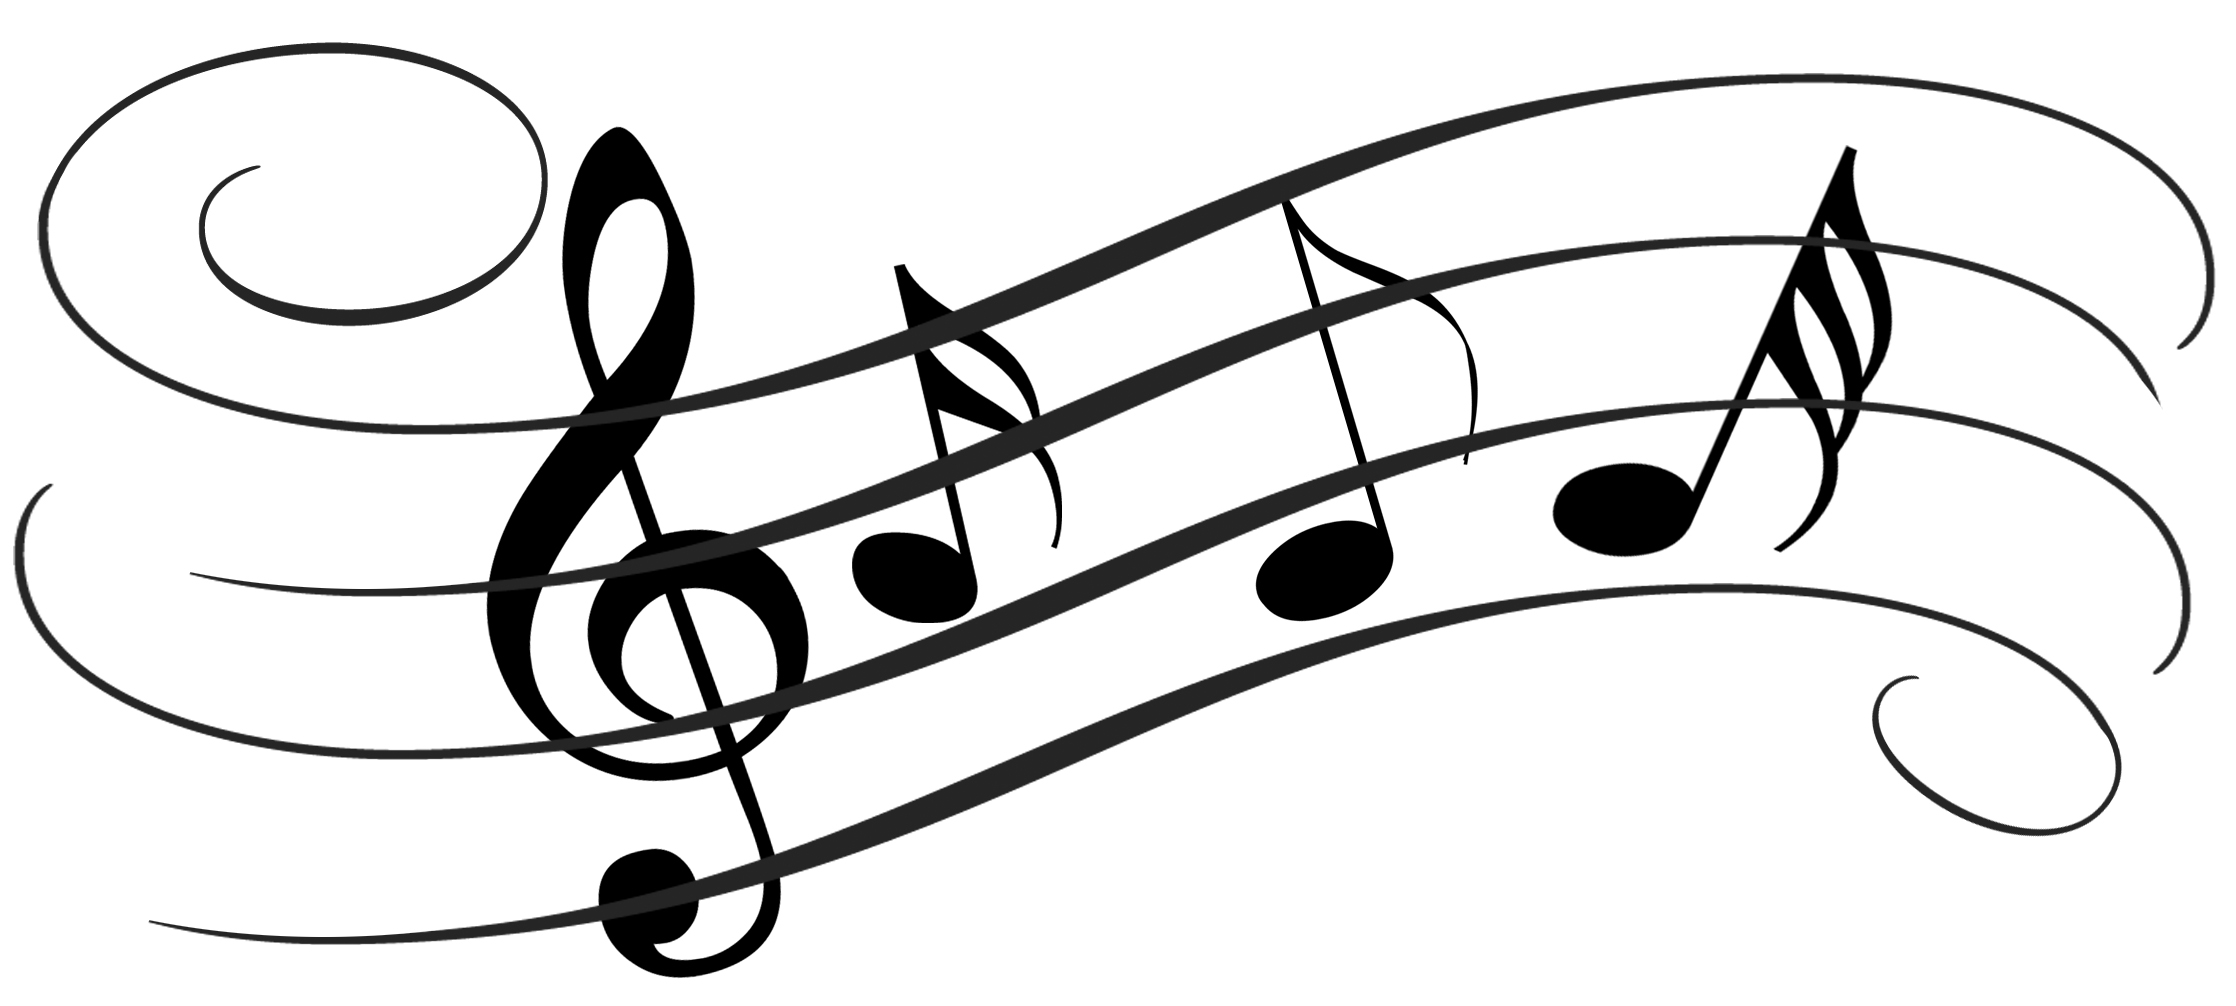 2236x1006 Music Notes Clip Art Free Clipart Images 4